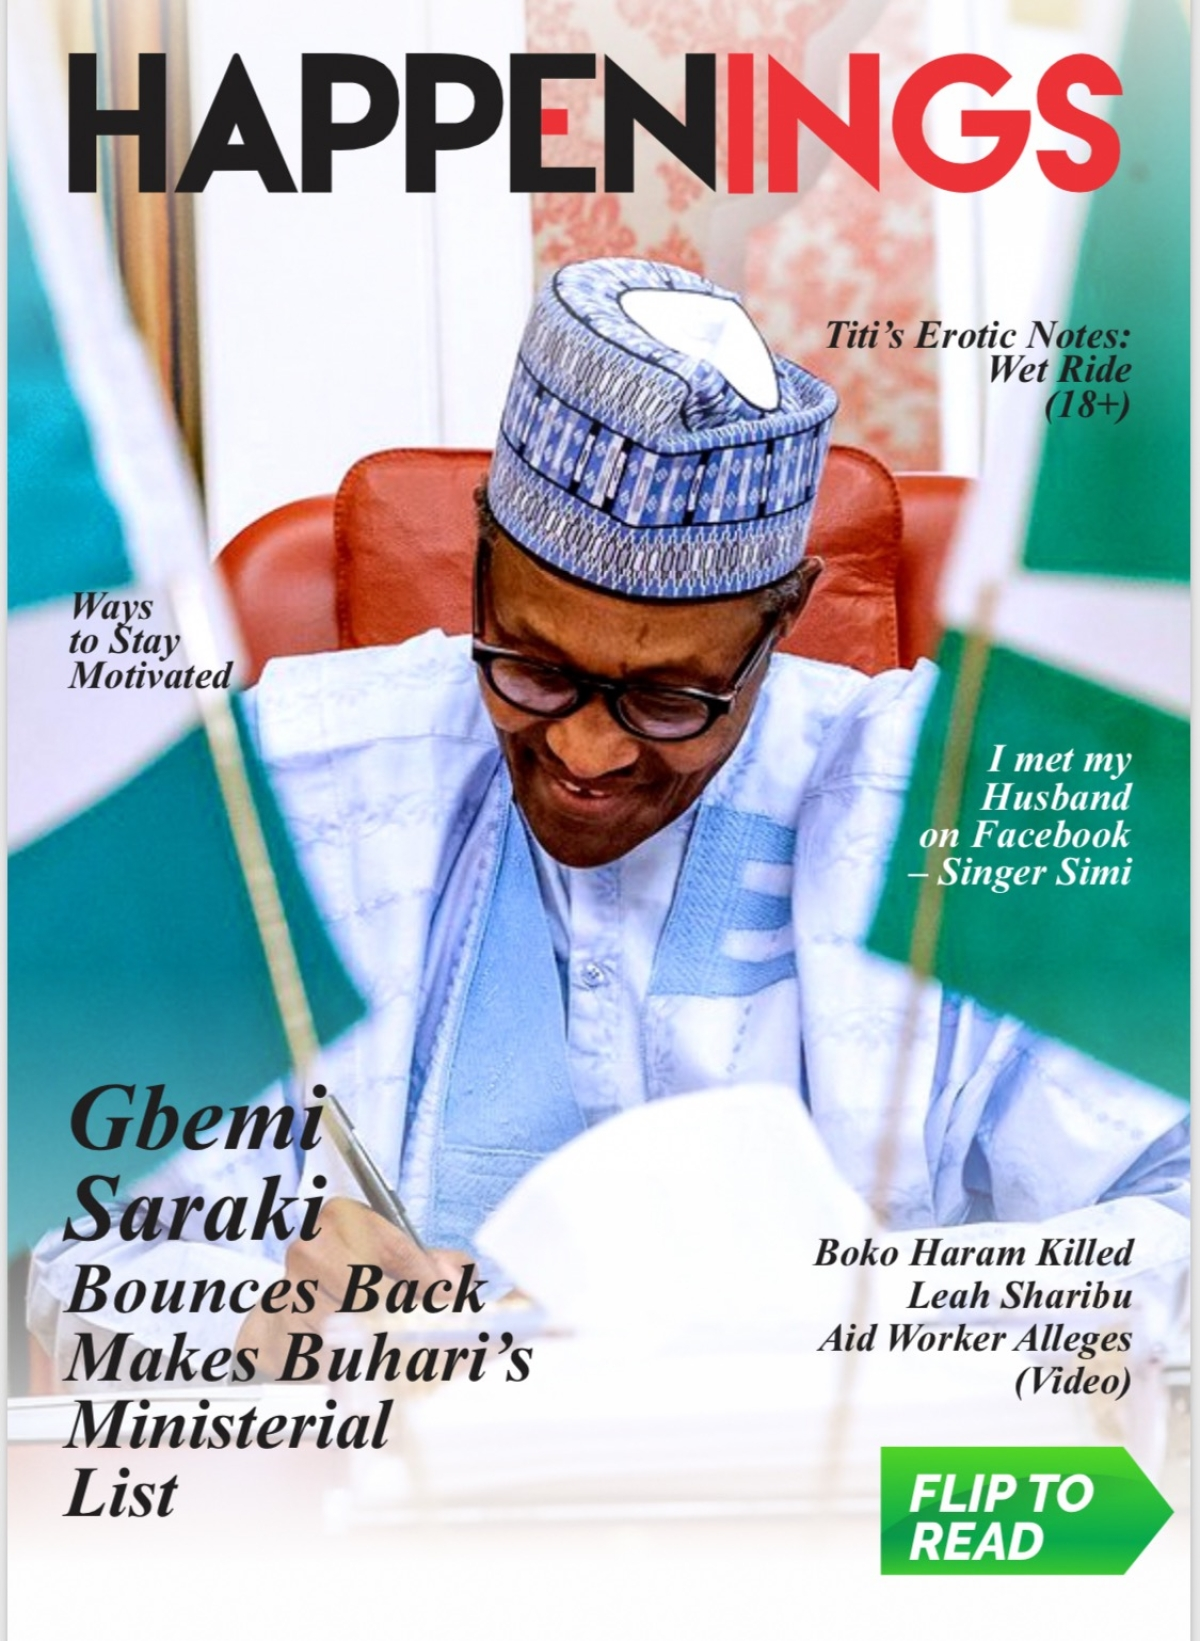 Happenings Newsletter: Much Ado About Buhari's Ministerial List